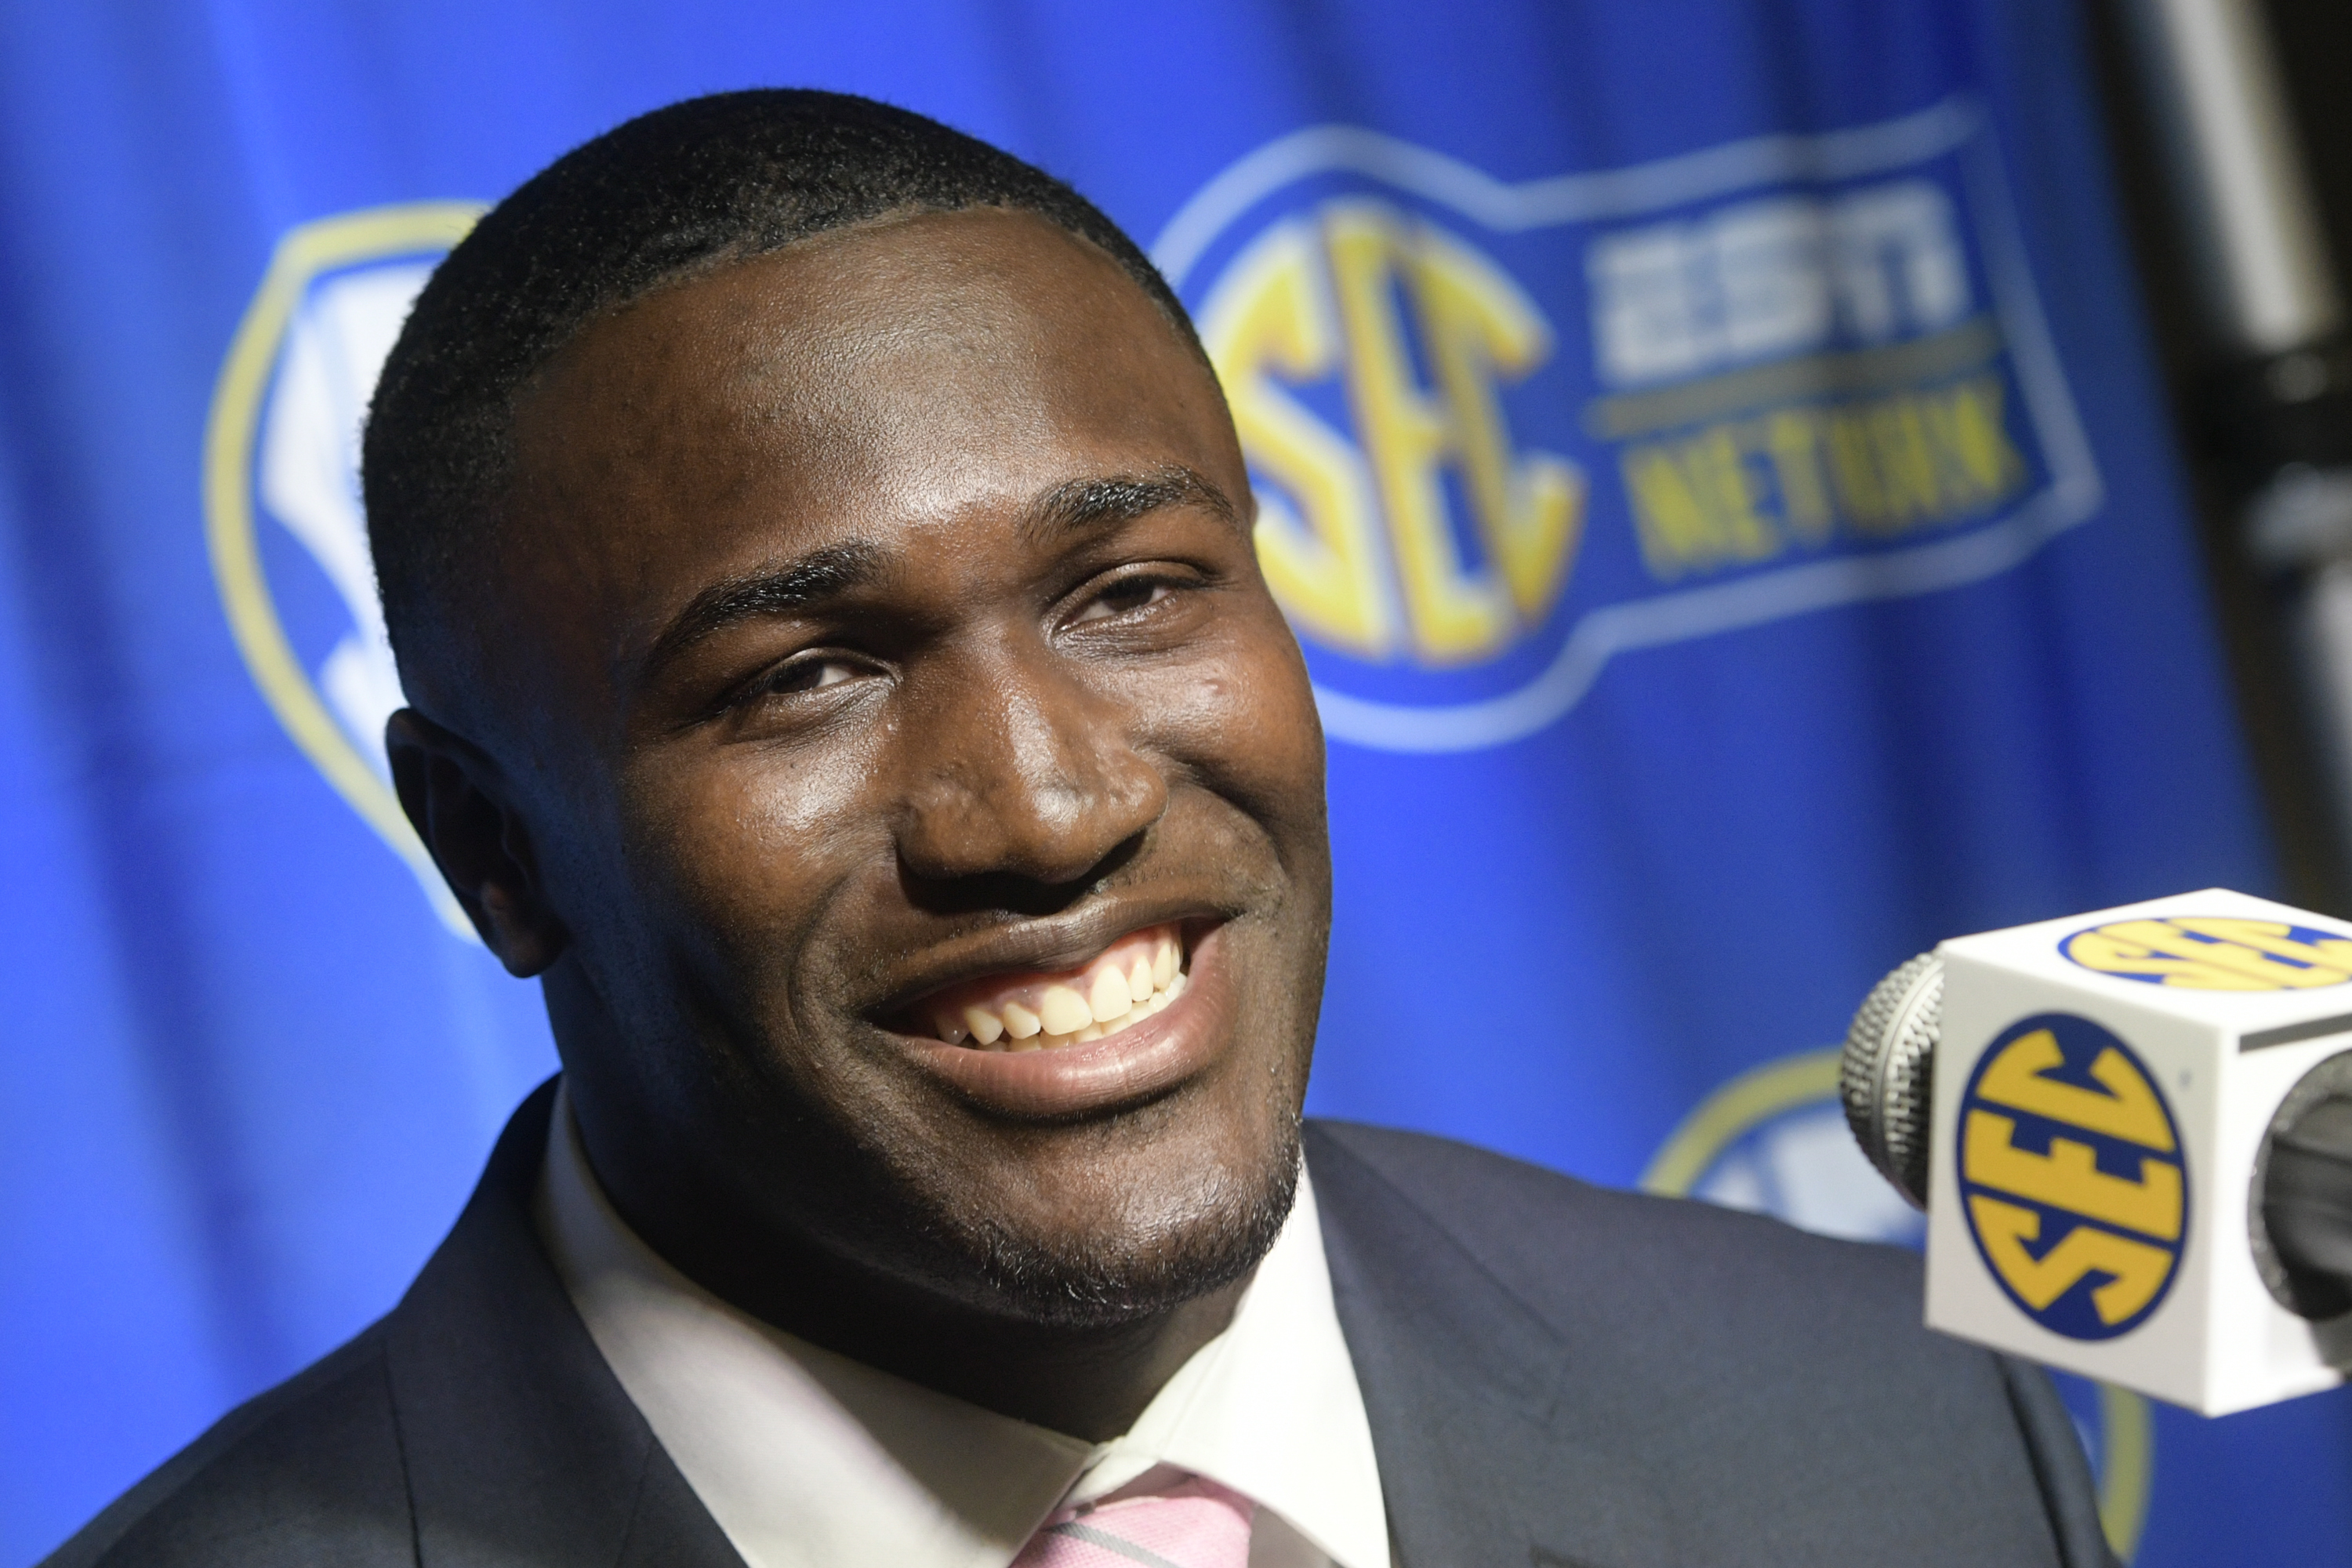 LSU linebacker Devin White is interviewed during NCAA college football Southeastern Conference media days at the College Football Hall of Fame in Atlanta, Monday, July 16, 2018. (AP Photo/John Amis) AP